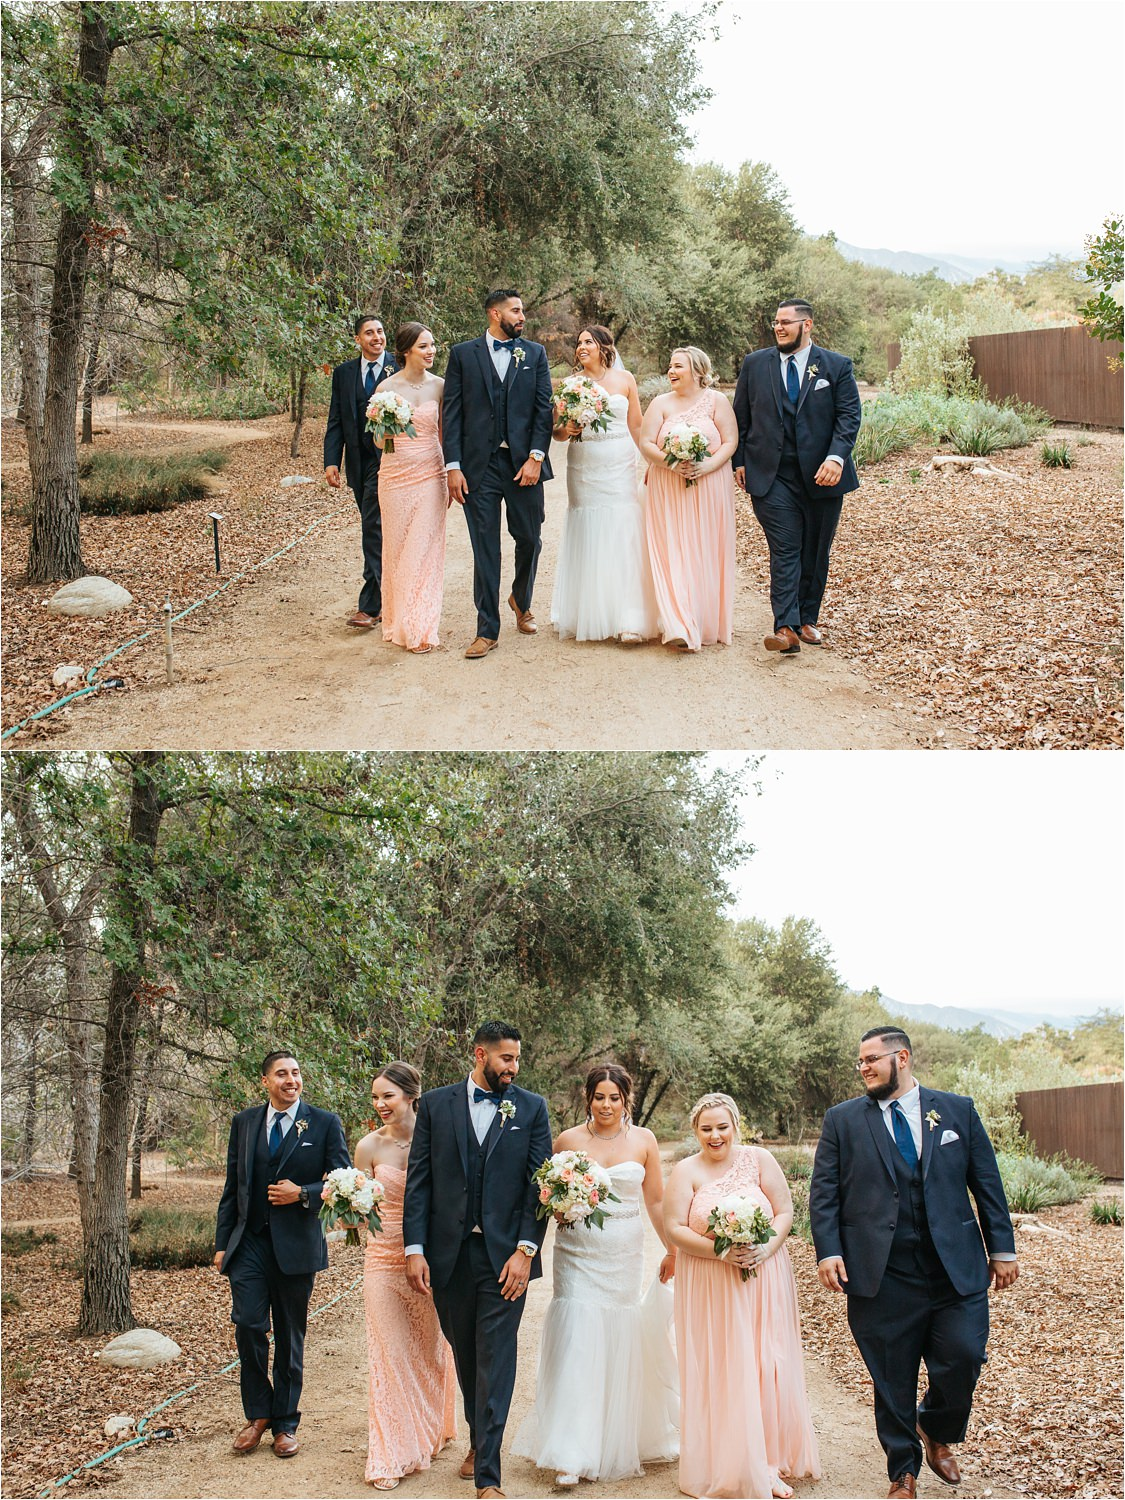 Claremont Wedding Photographer - Bridal Party Photos - http://brittneyhannonphotography.com